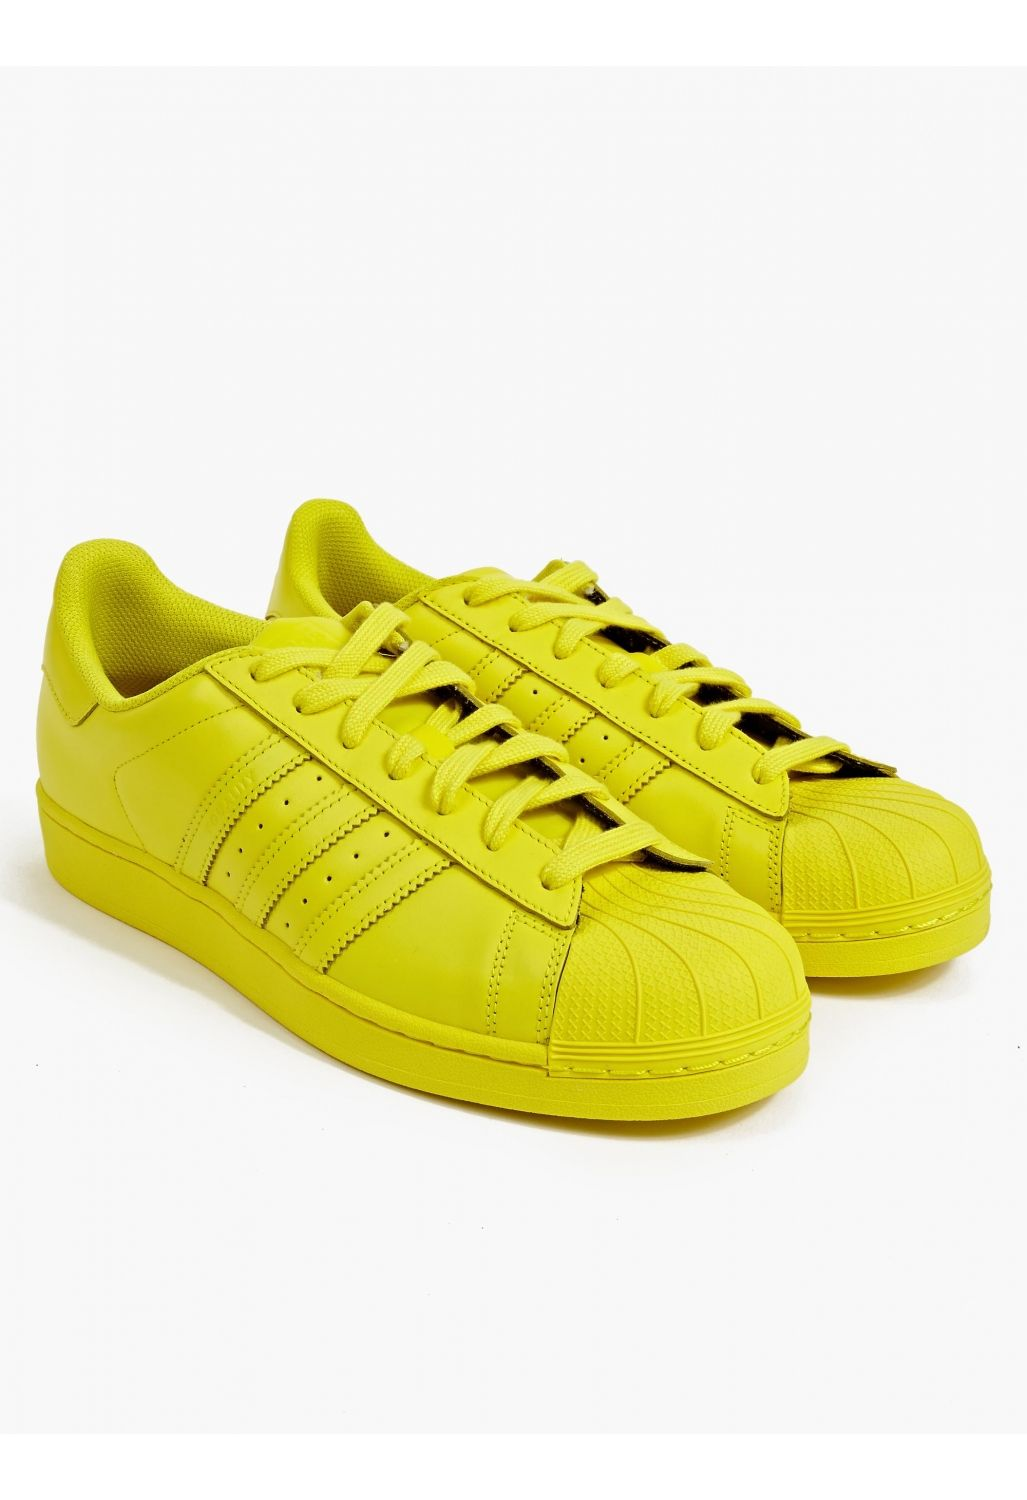 timeless design 3a183 64980 adidas Originals Men s Bright Yellow Supercolor Pack Superstar Sneakers    oki-ni